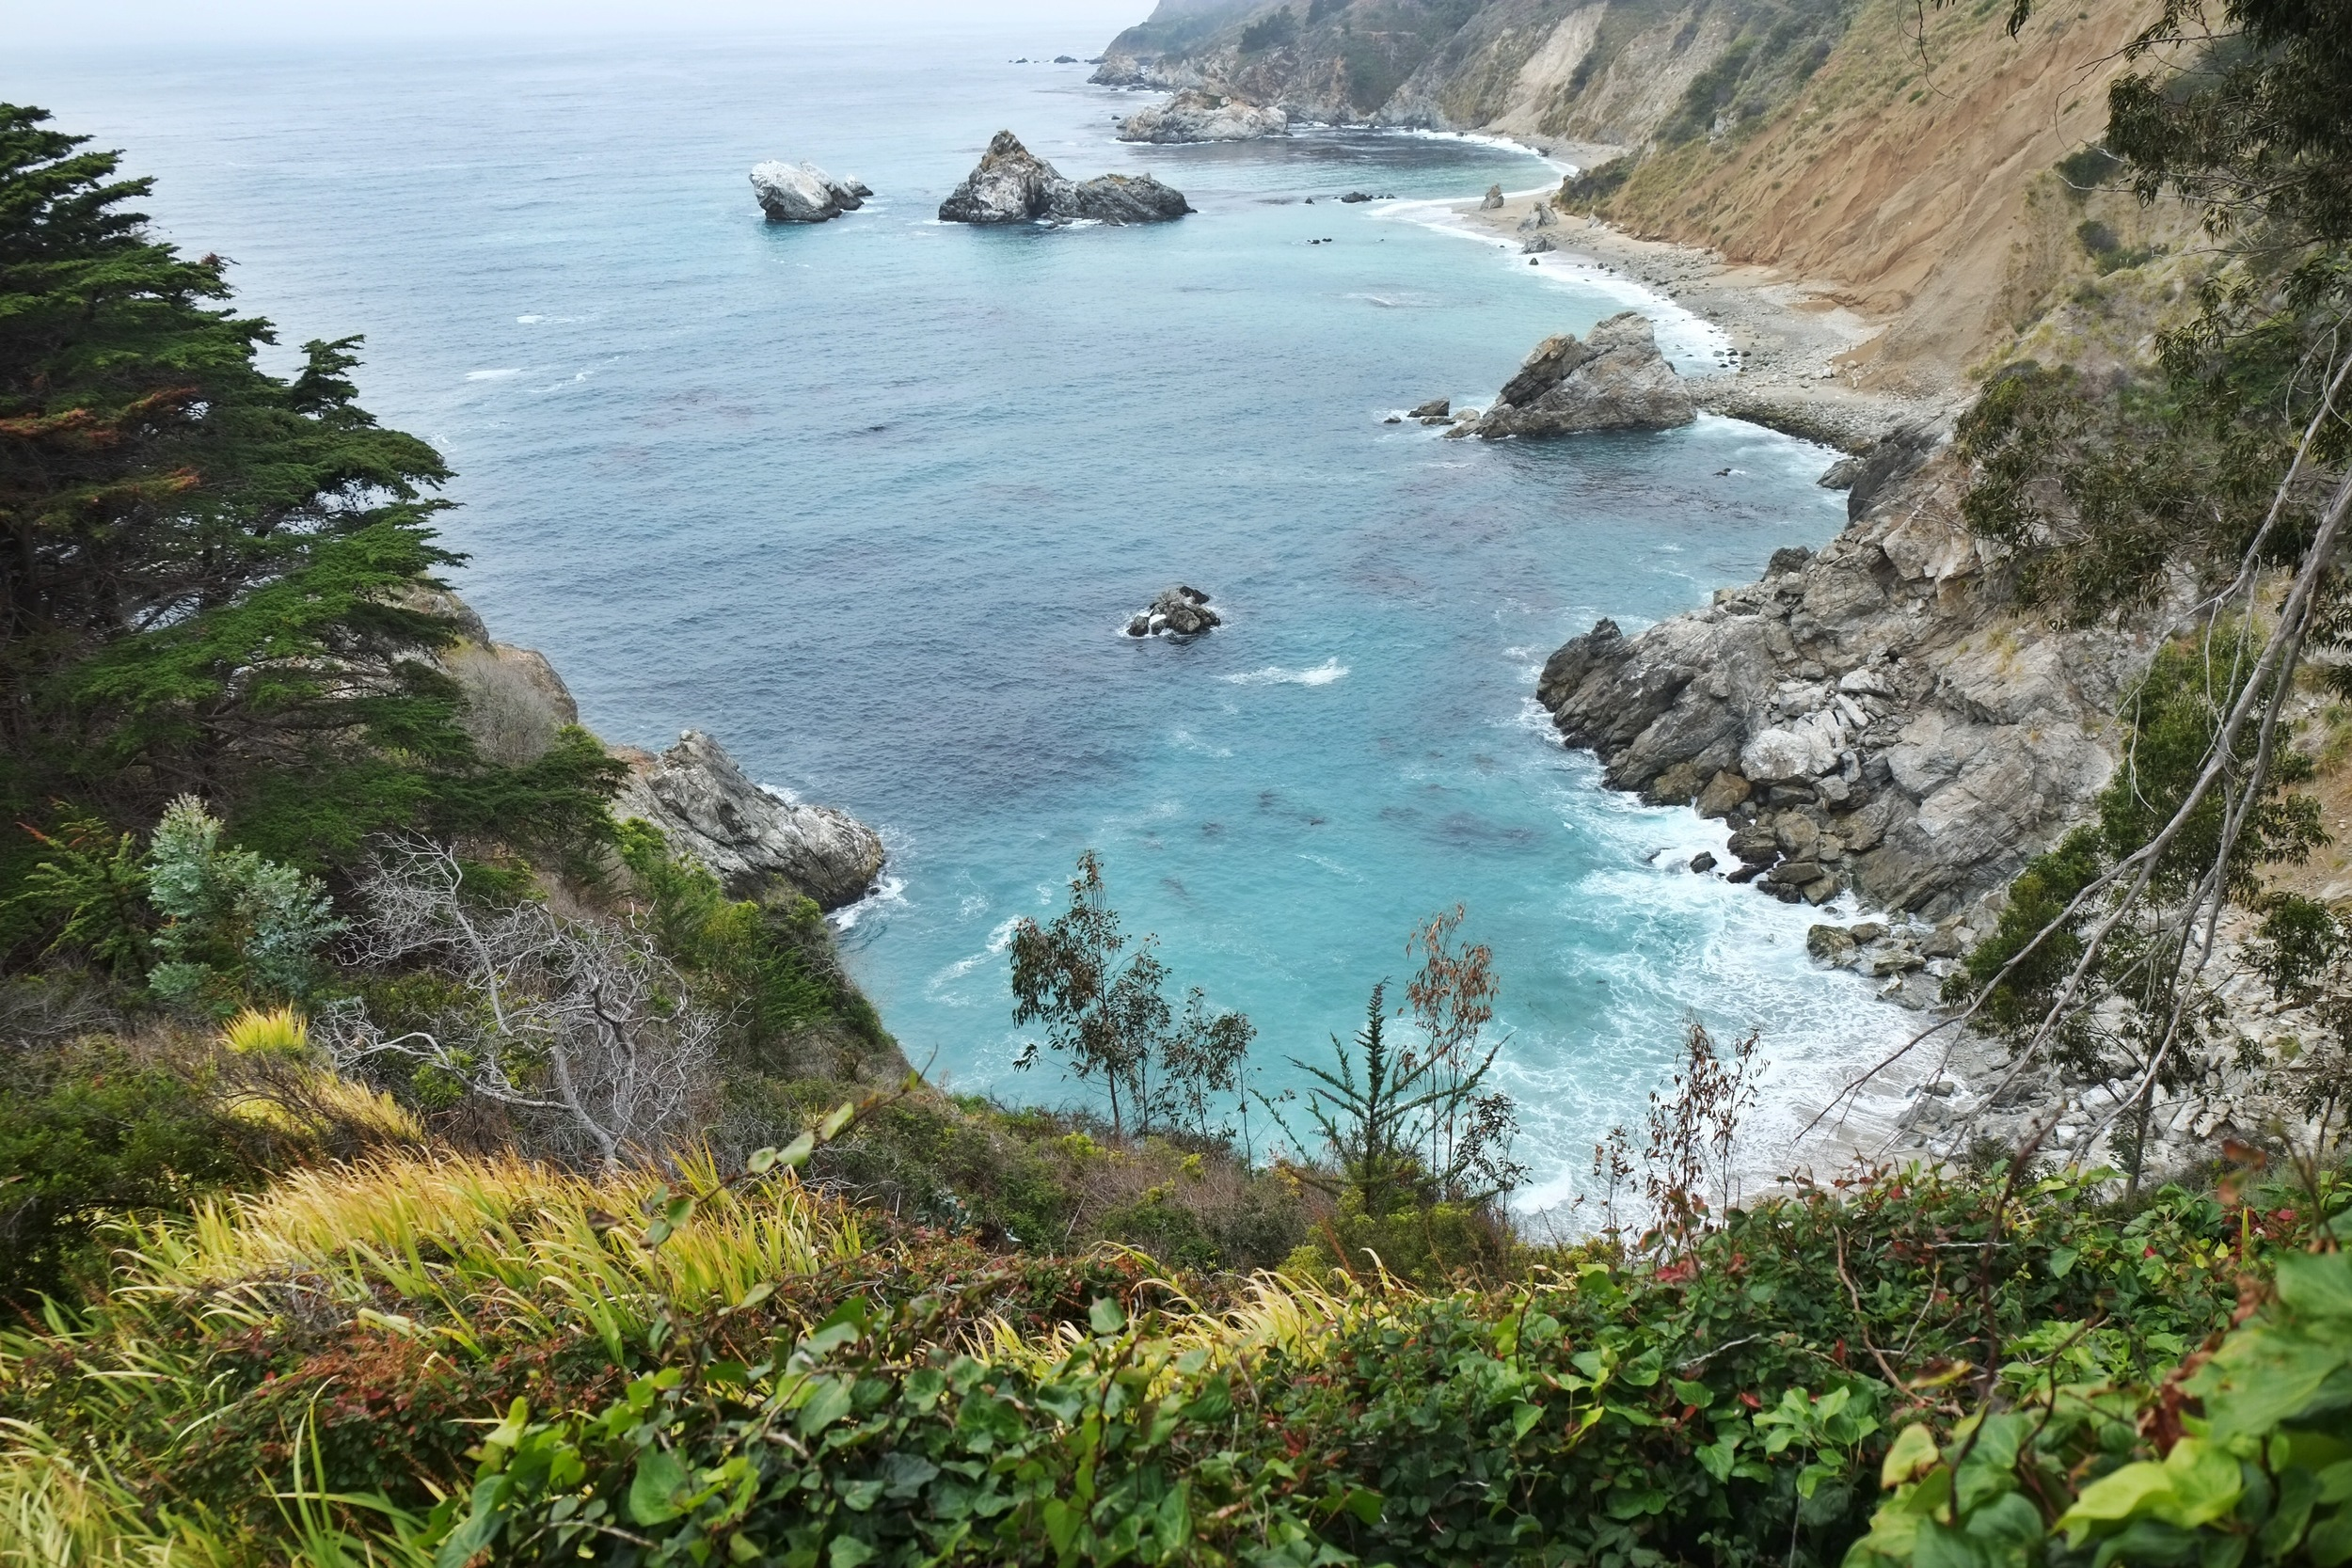 Julia Pfeiffer Burns State Park - Big Sur